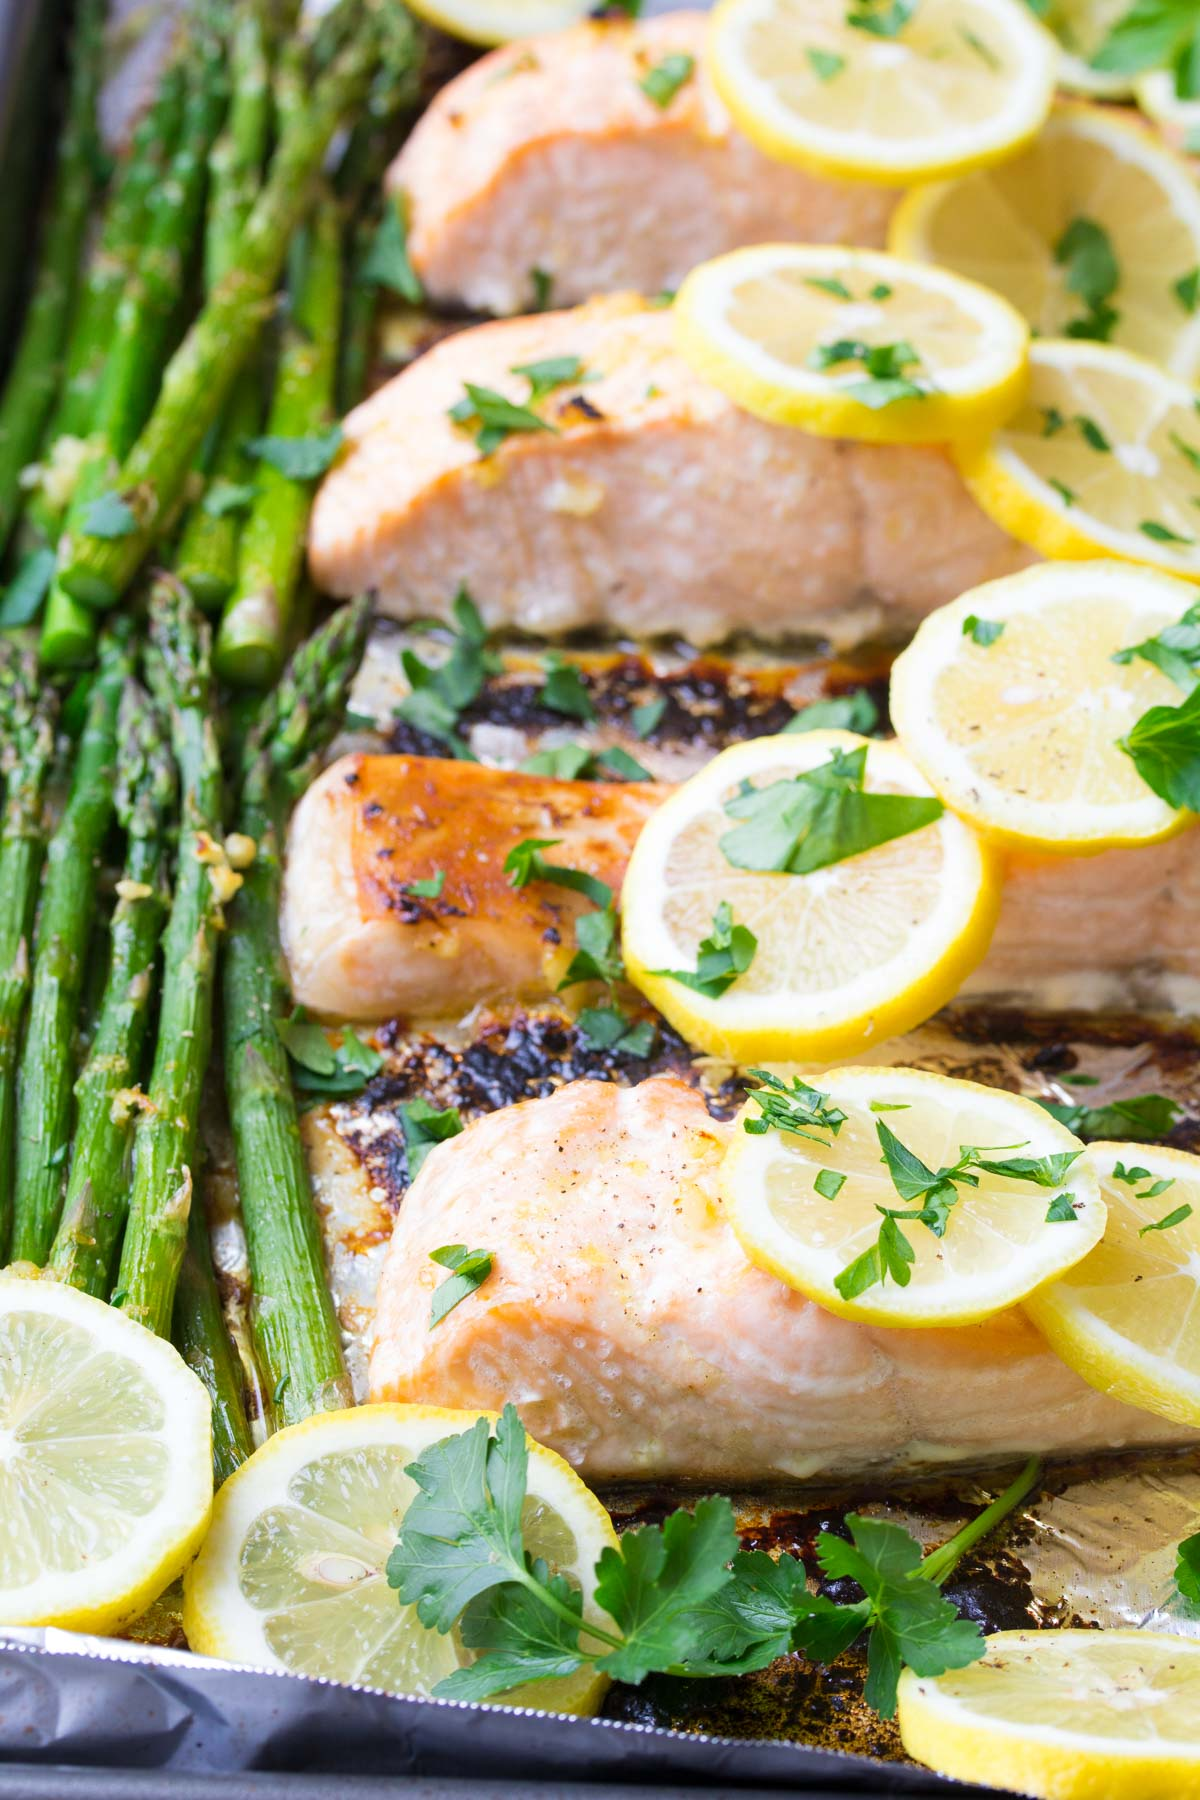 Sheet Pan Lemon Garlic Salmon and Asparagus, ready in 30 minutes! A healthy, easy dinner recipe!   www.kristineskitchenblog.com